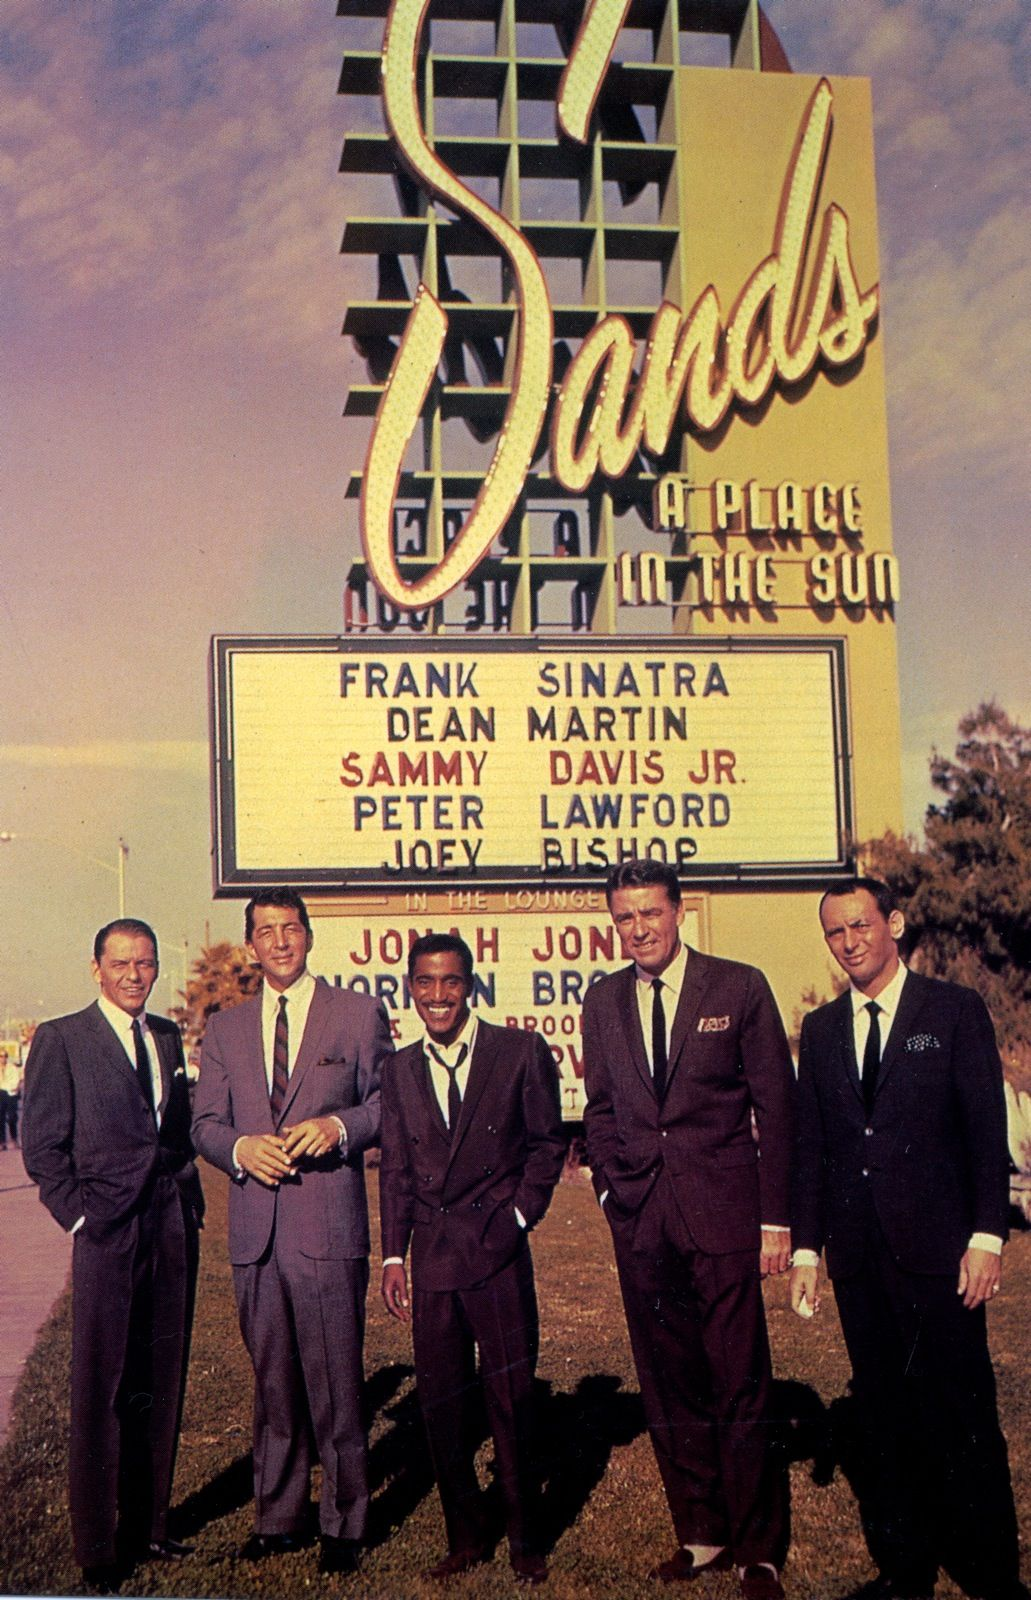 The Rat Pack - As the Rat Pack, Frank Sinatra, Dean Martin, Sammy ...